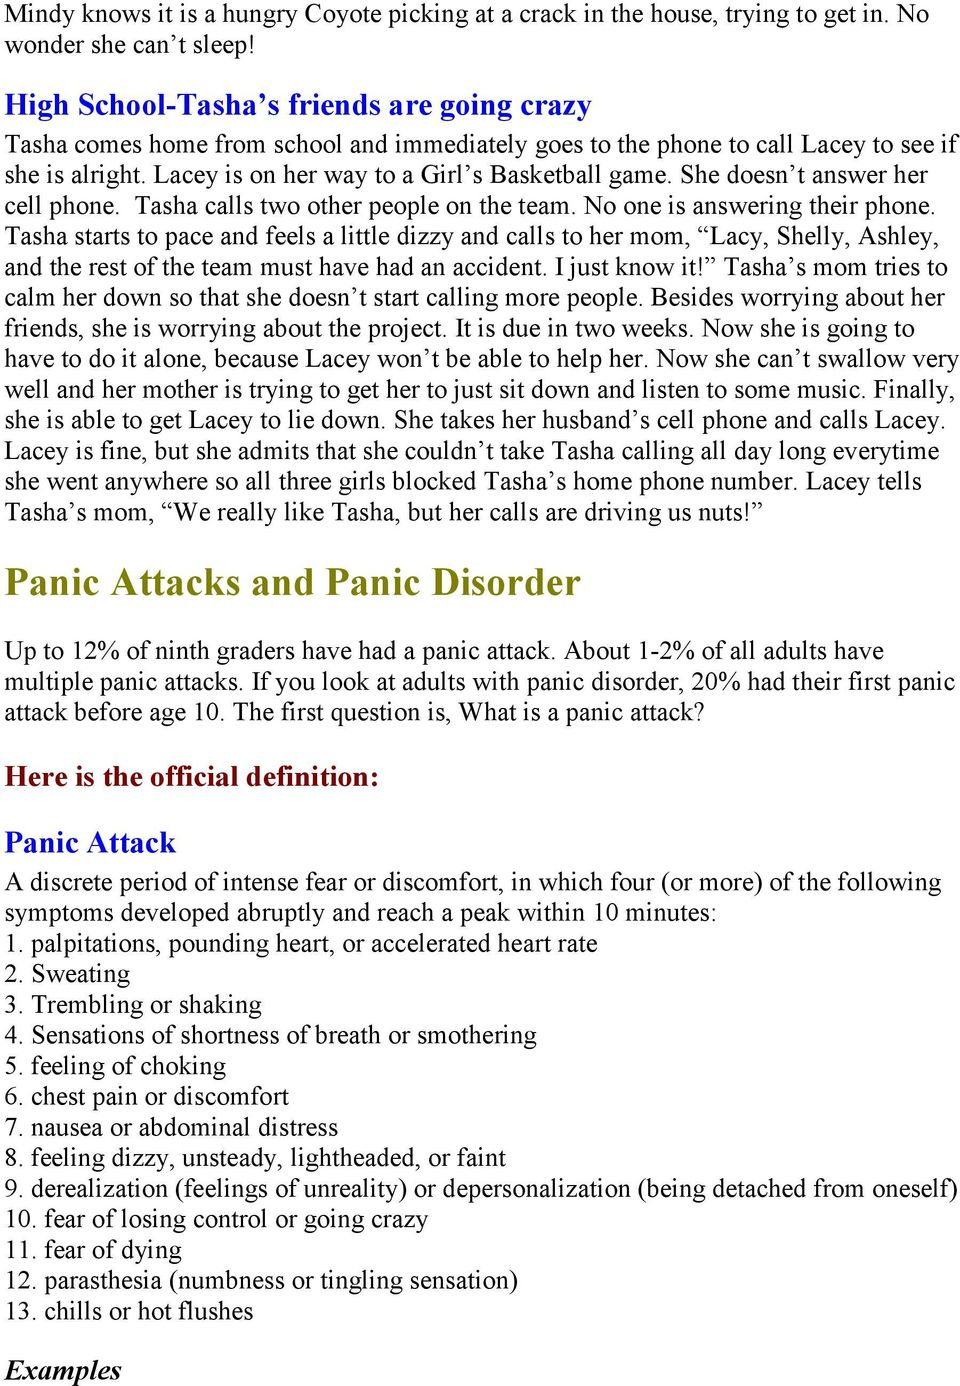 anxiety disorders in children and adolescents by james chandler, md